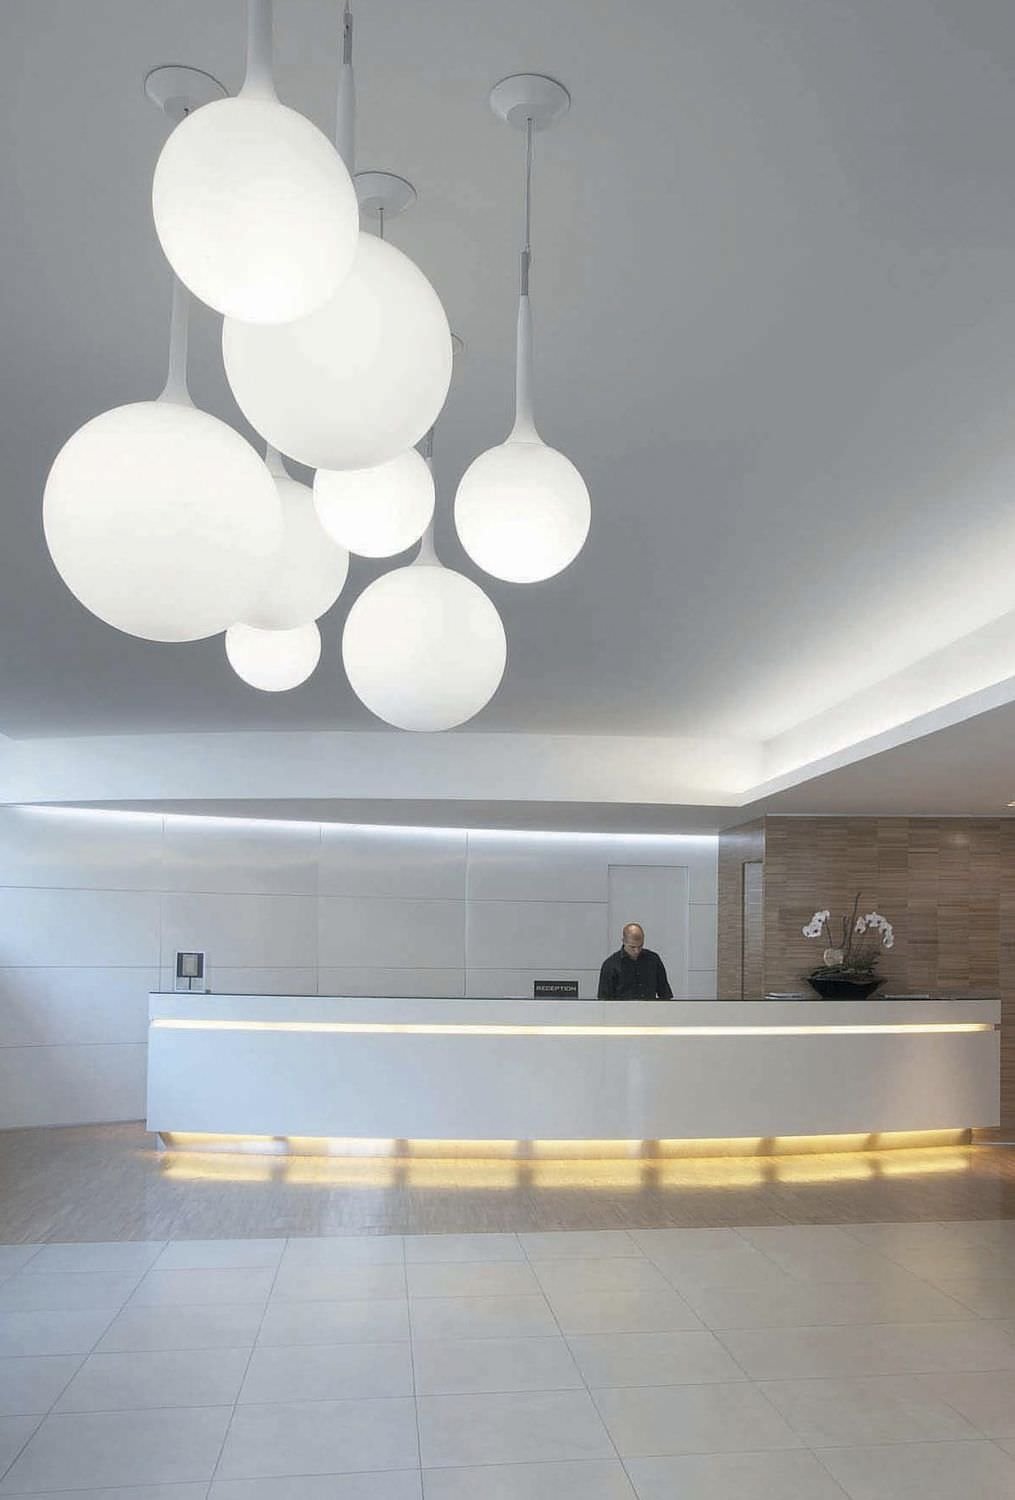 A Grouping Of Ca Pendant Lamps By Artemide Provide Diffused Lighting While Making Striking Sculptural Statement